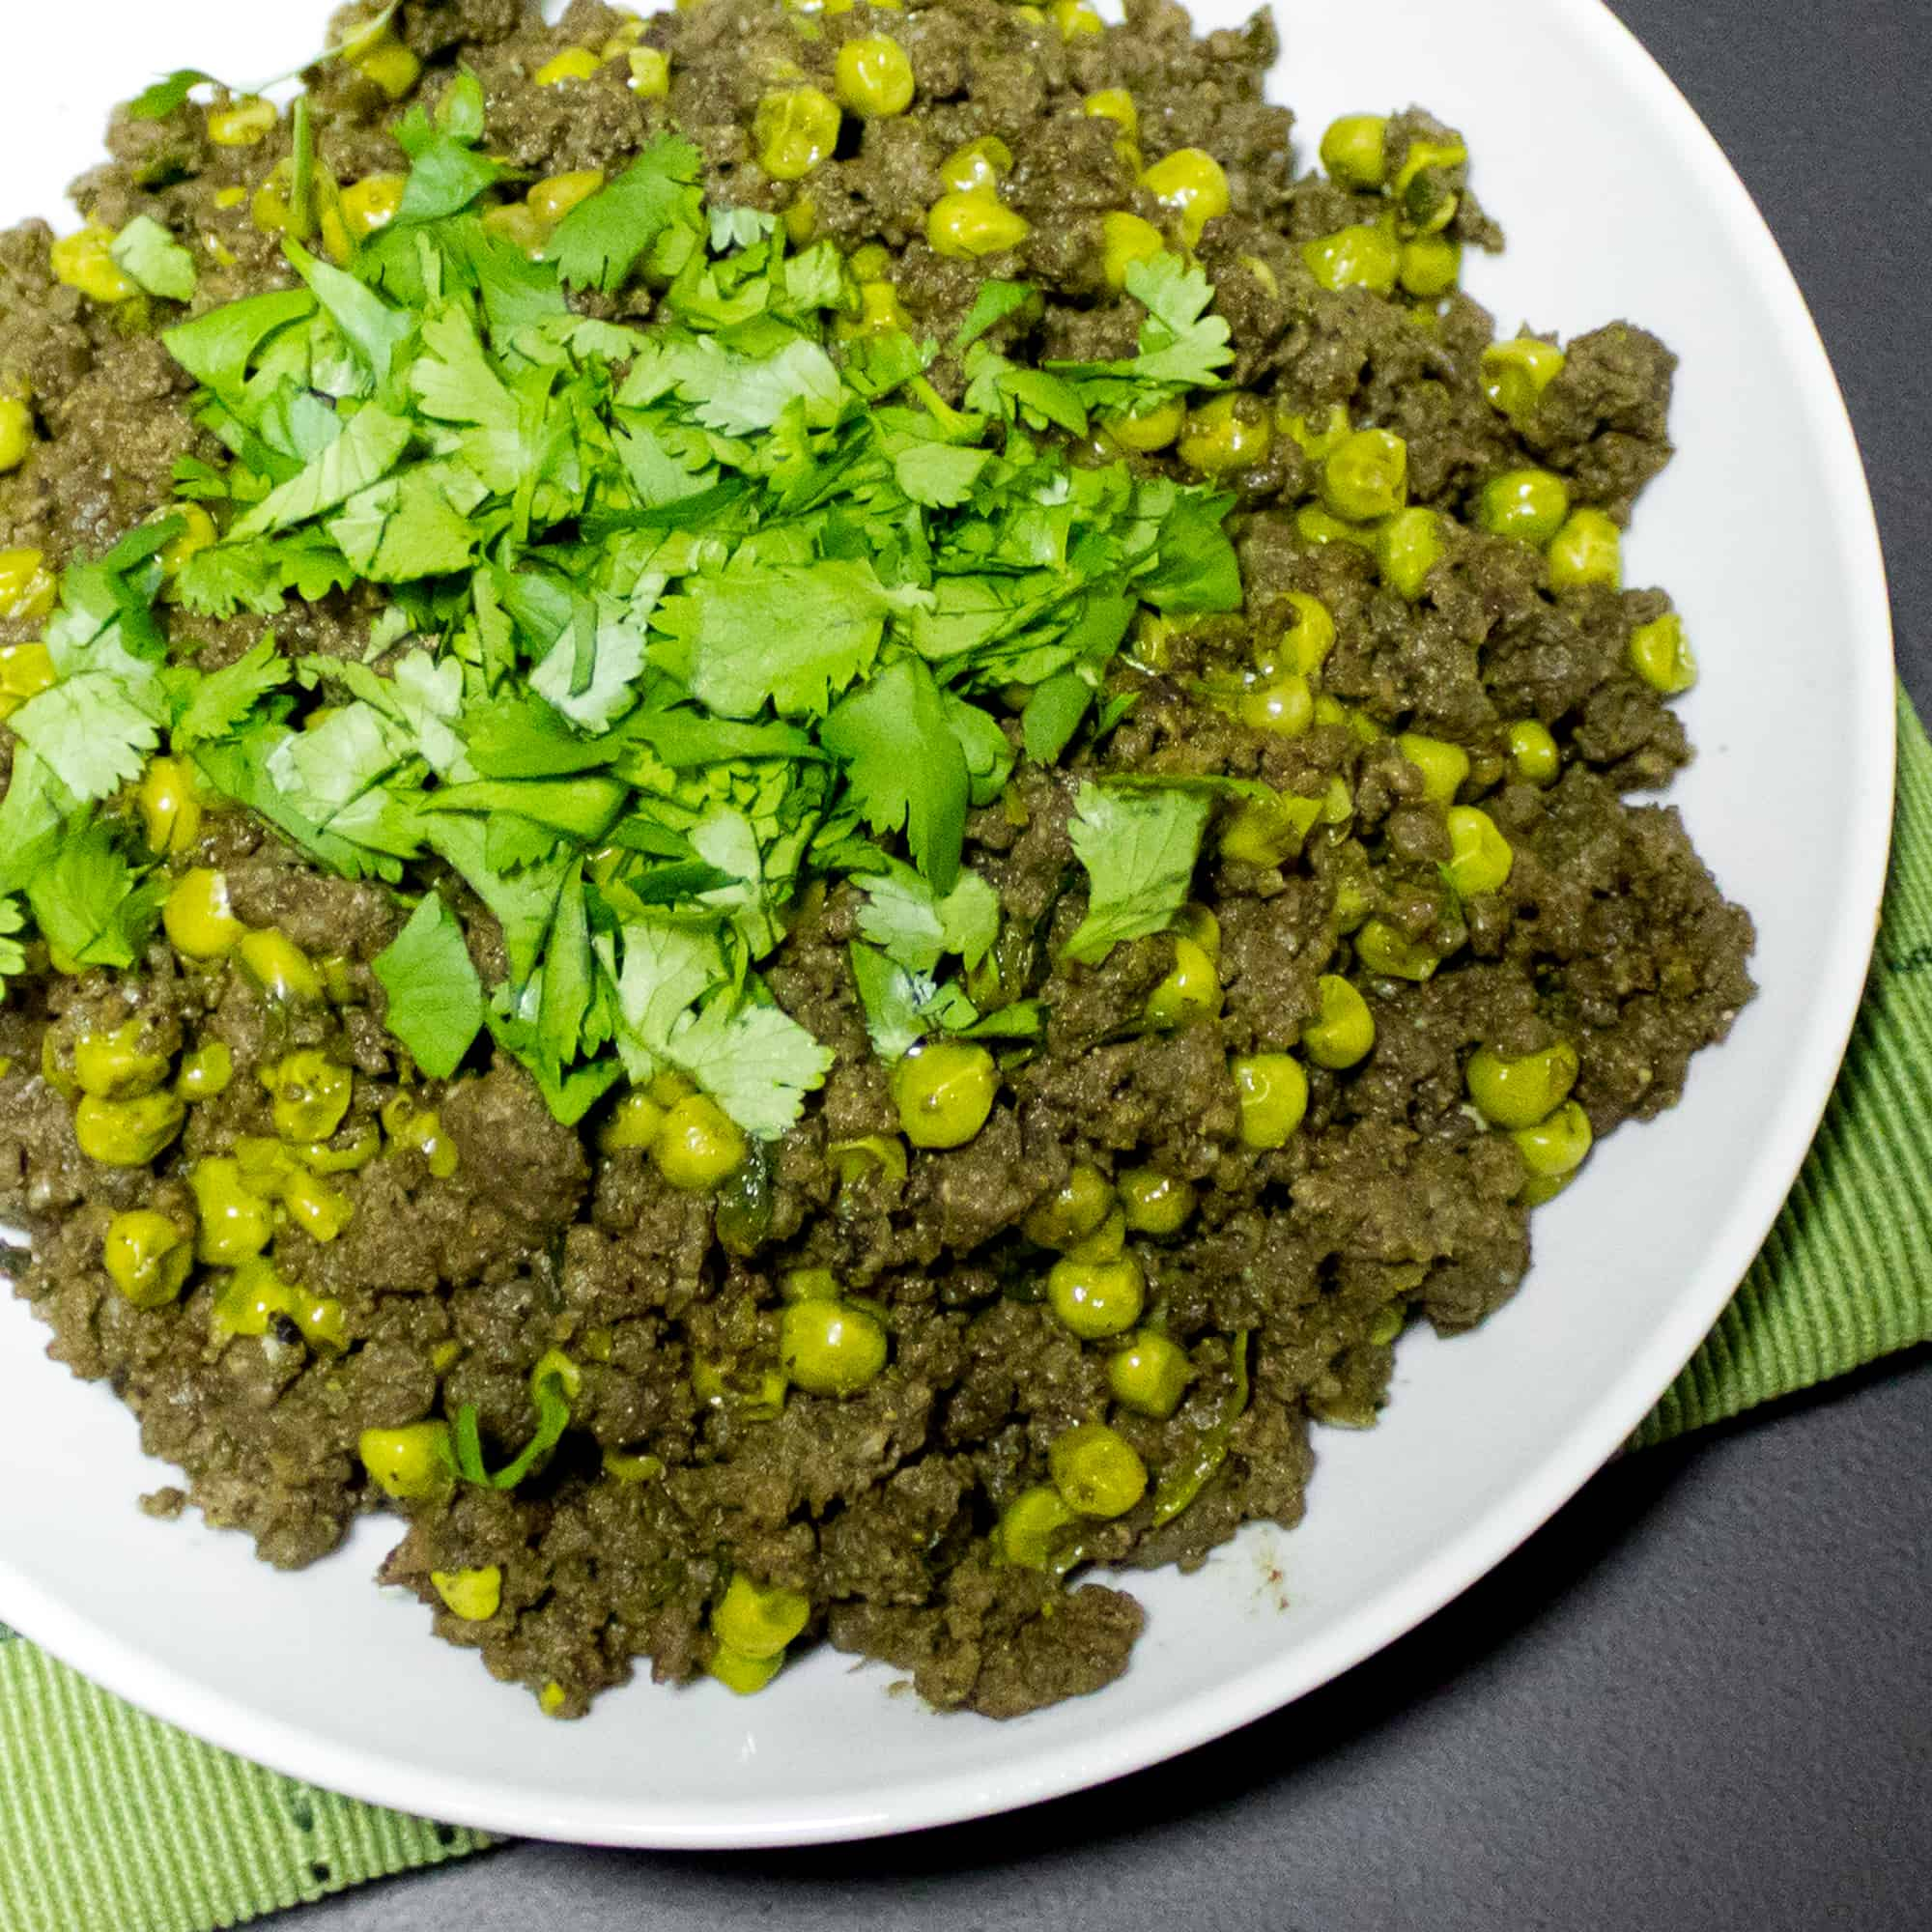 A delicious Indian dish made with mince beef, ginger, garlic and other curry seasonings.